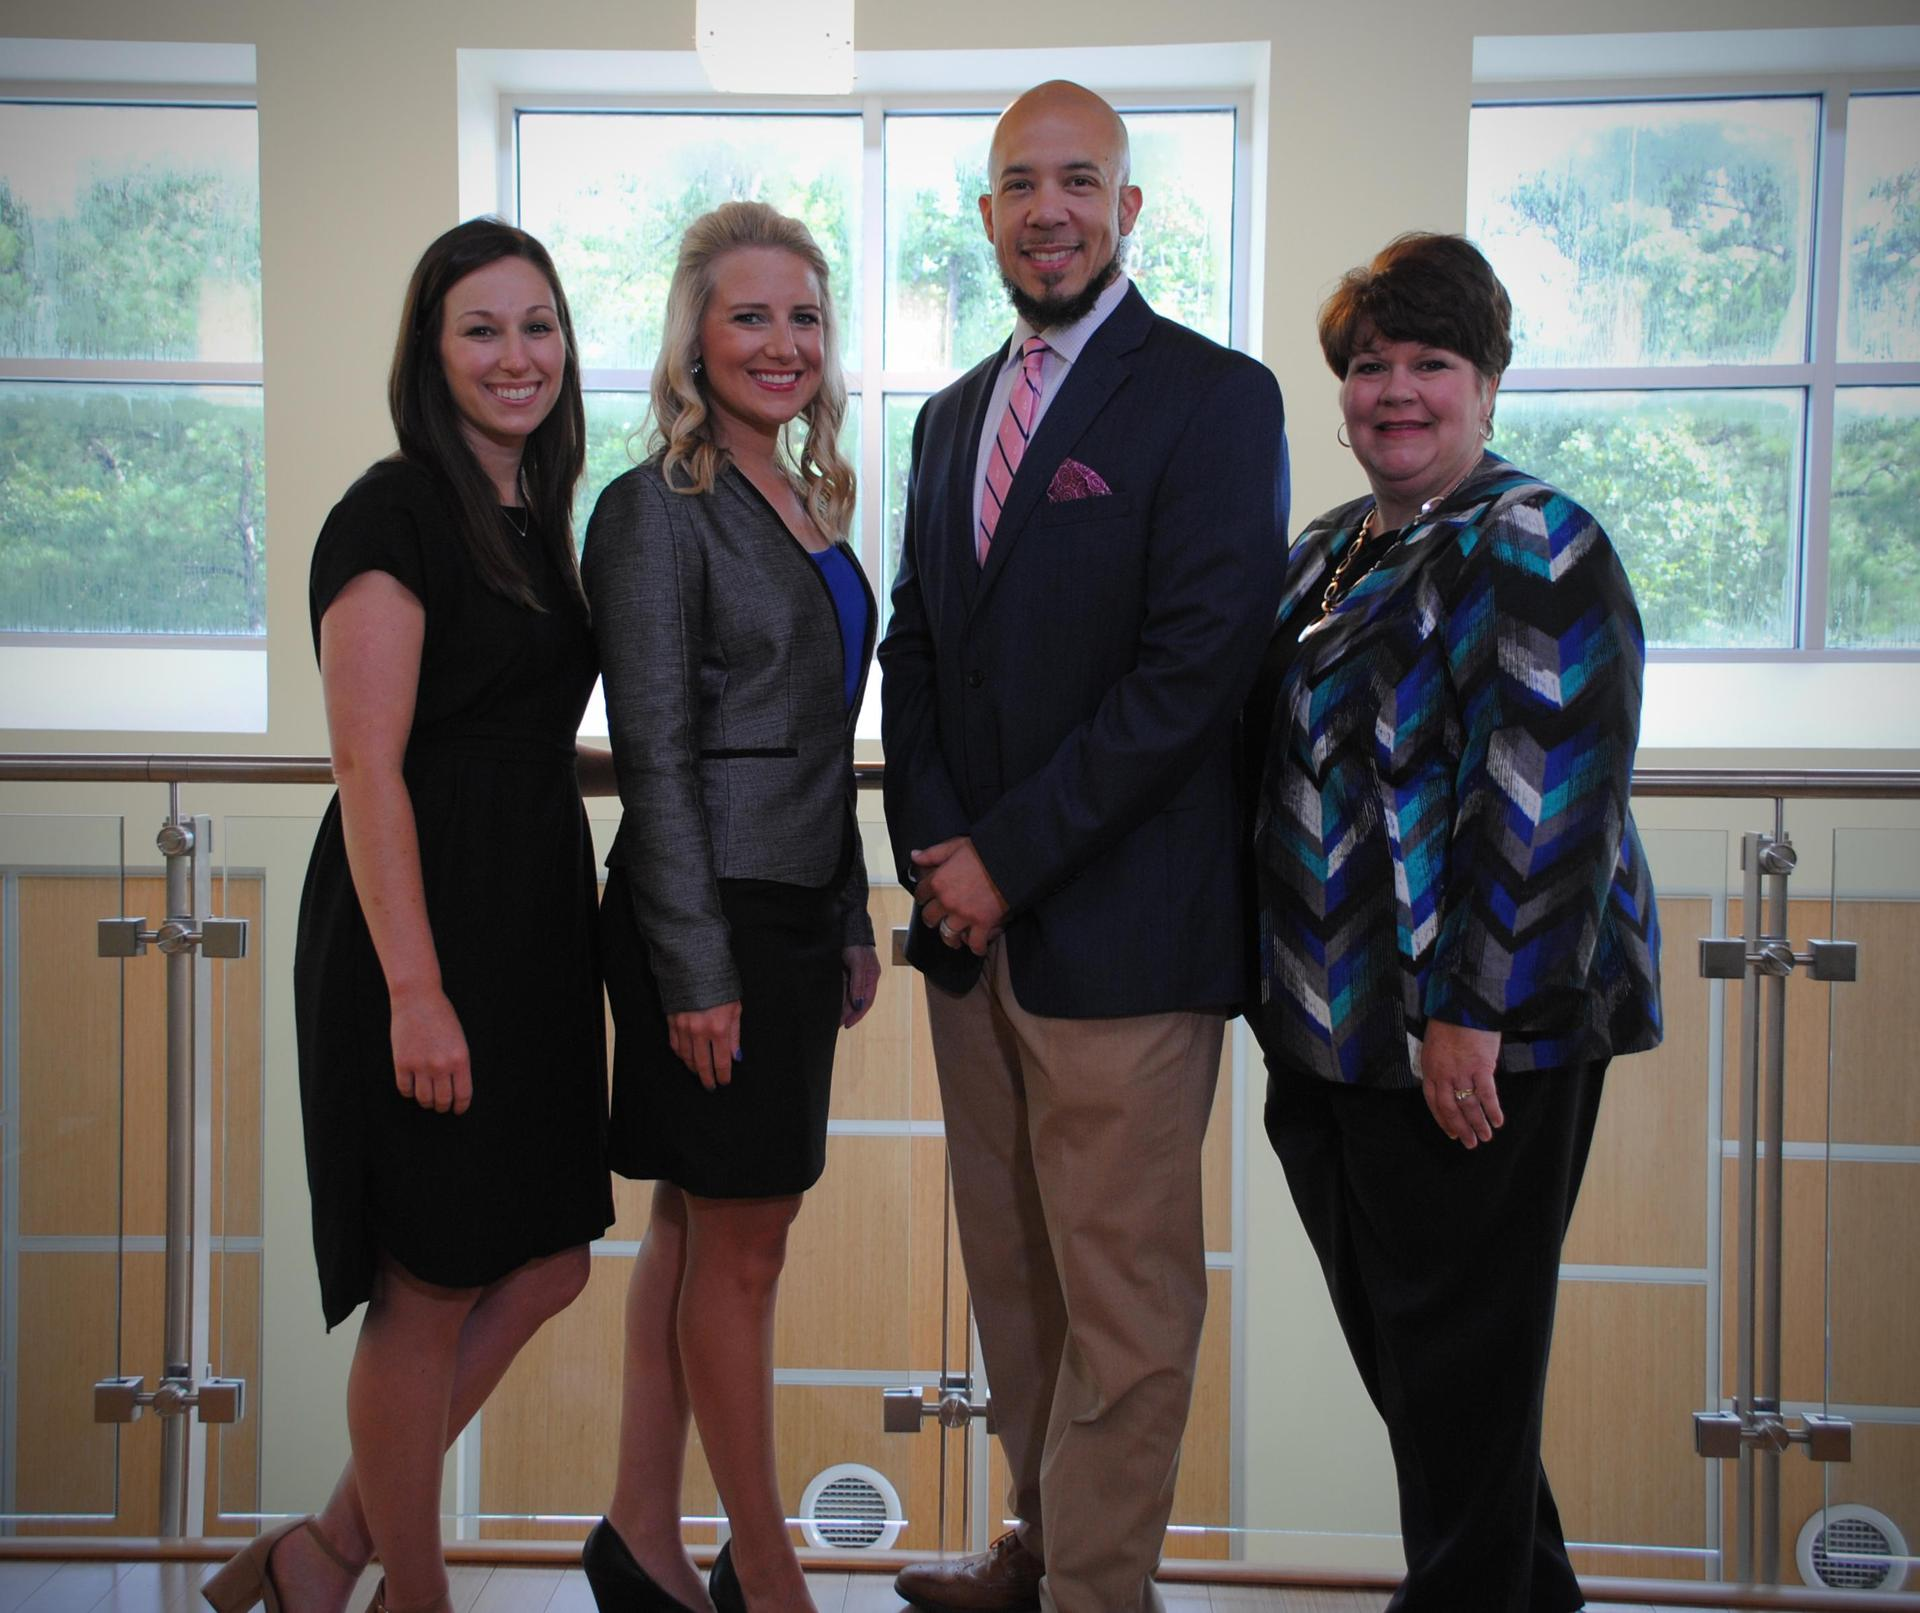 Megan McCormack, Jaynie Payne, Dr. Chris Williams, and Lori Brennan